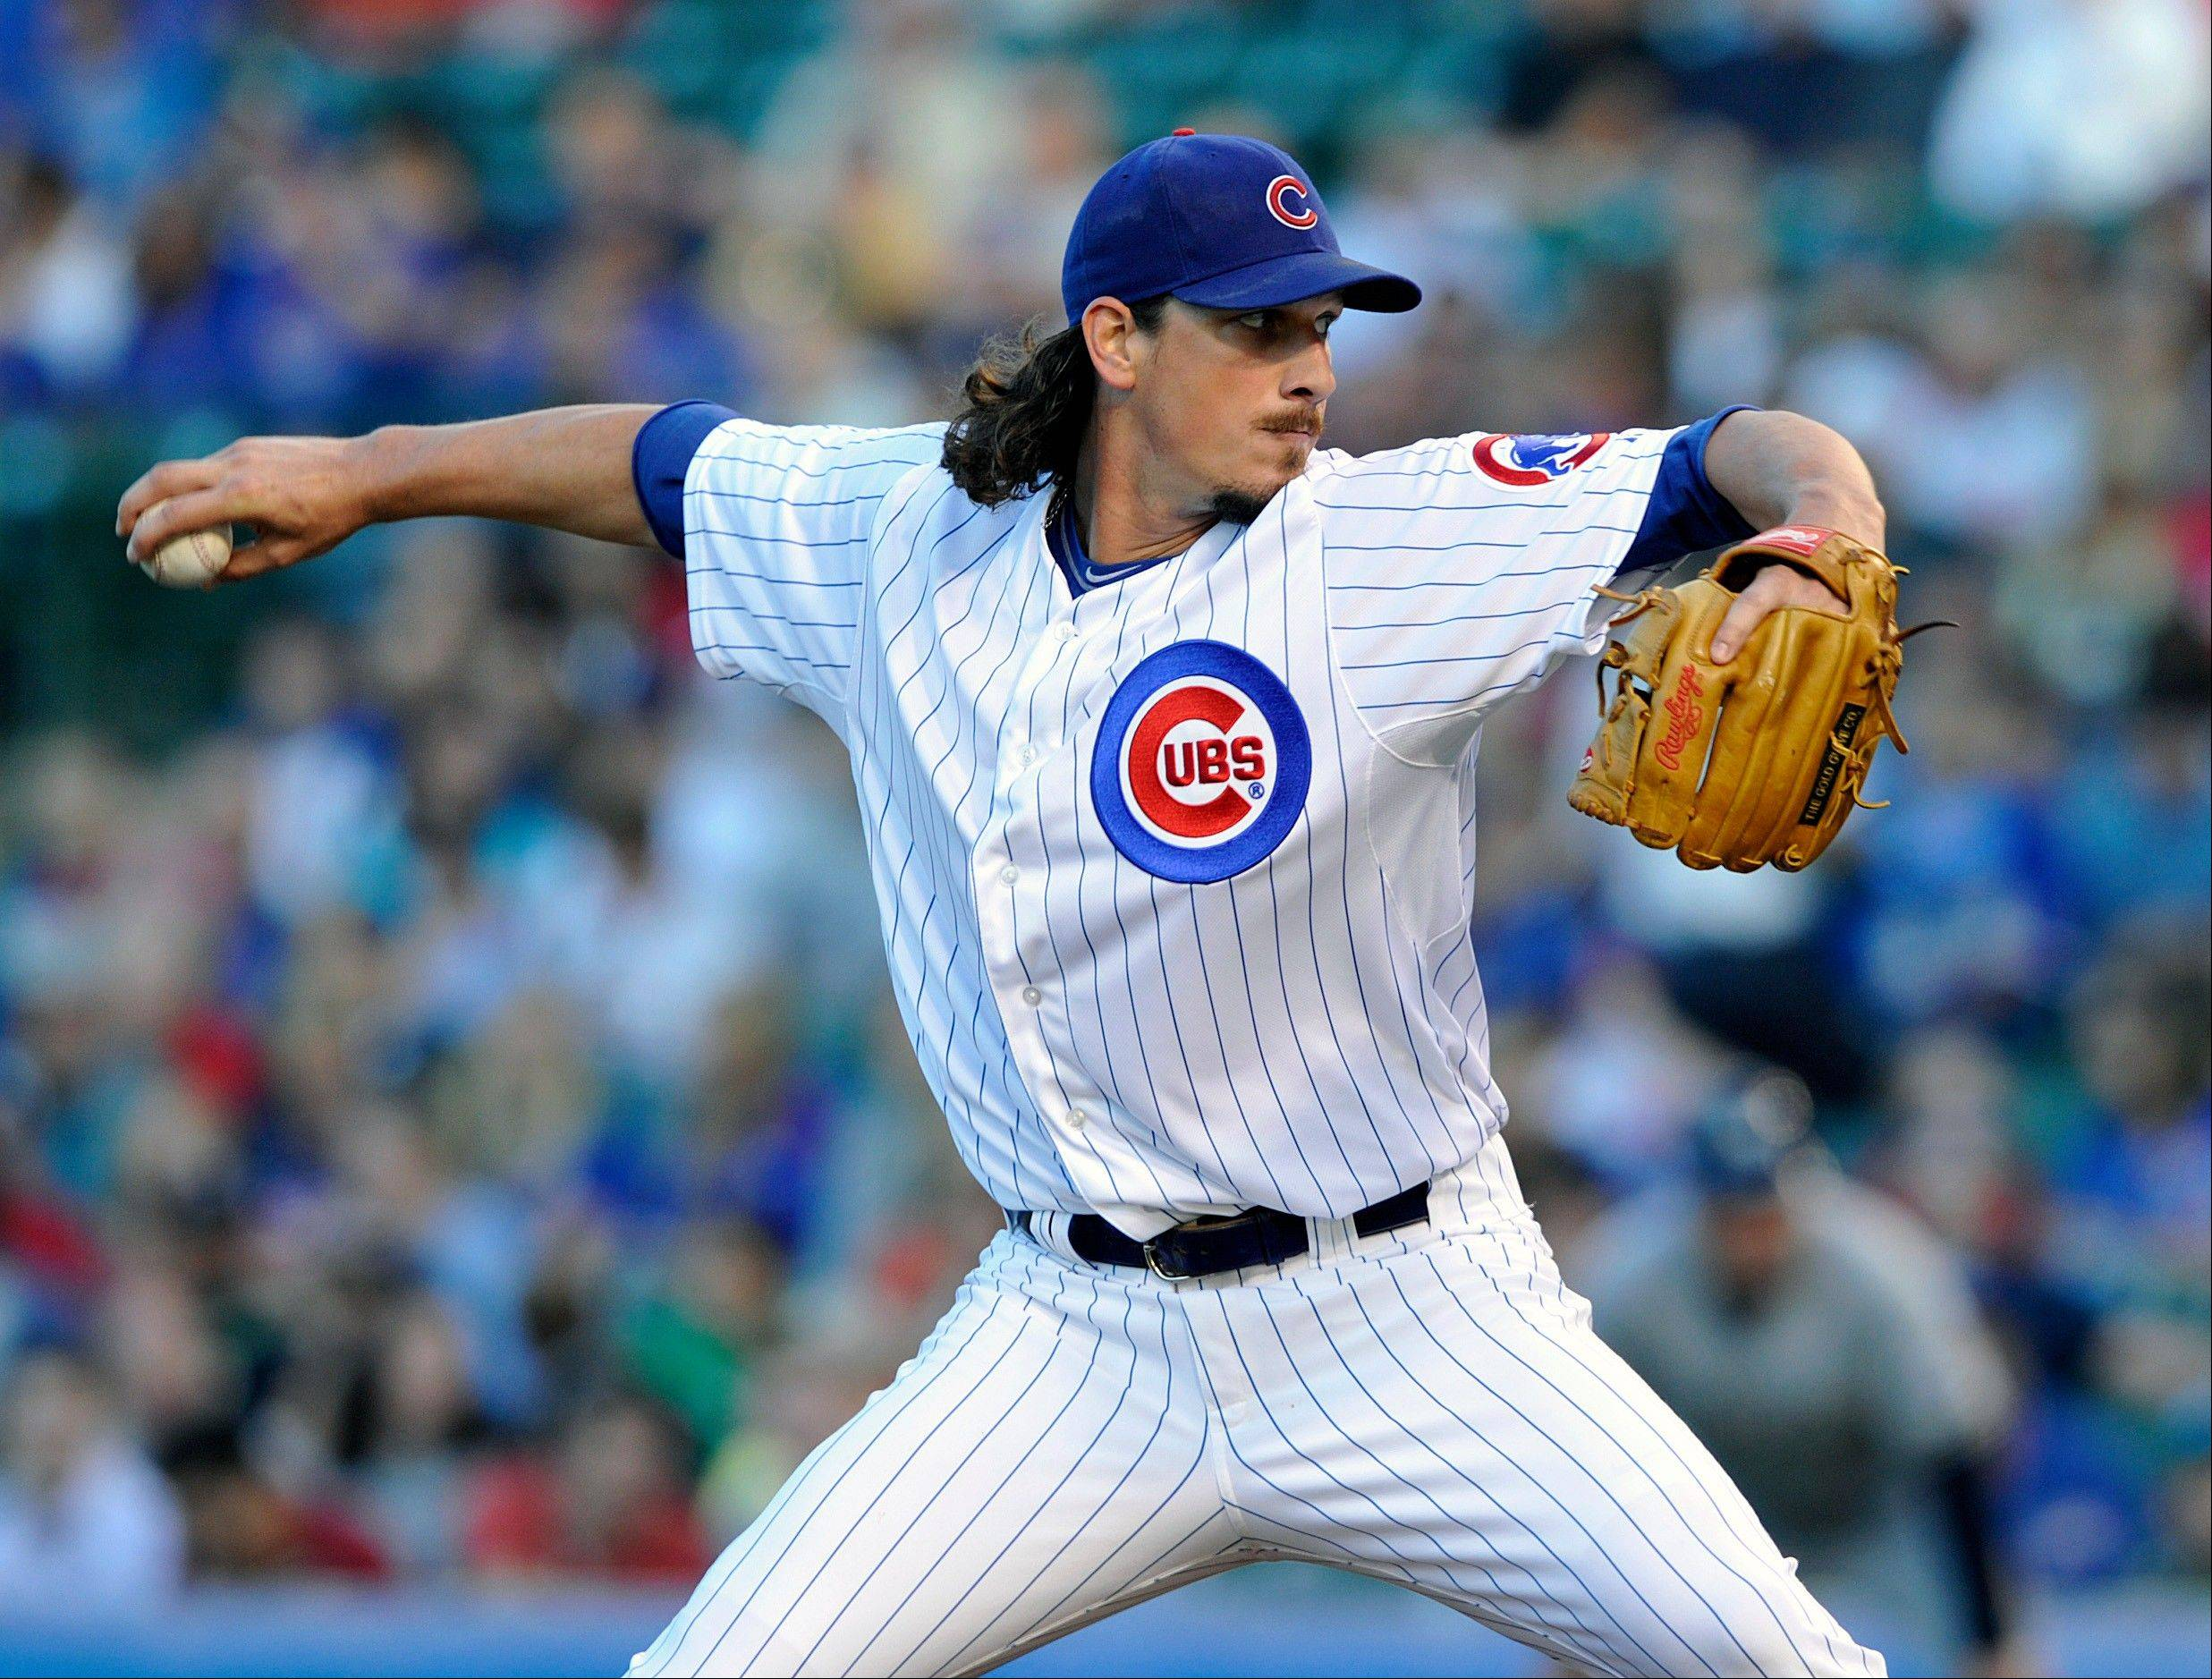 Cubs starting pitcher Jeff Samardzija, who worked 7 shutout innings in a no-decision Monday night against the Brewers, says he likes the makeup of this year's team.